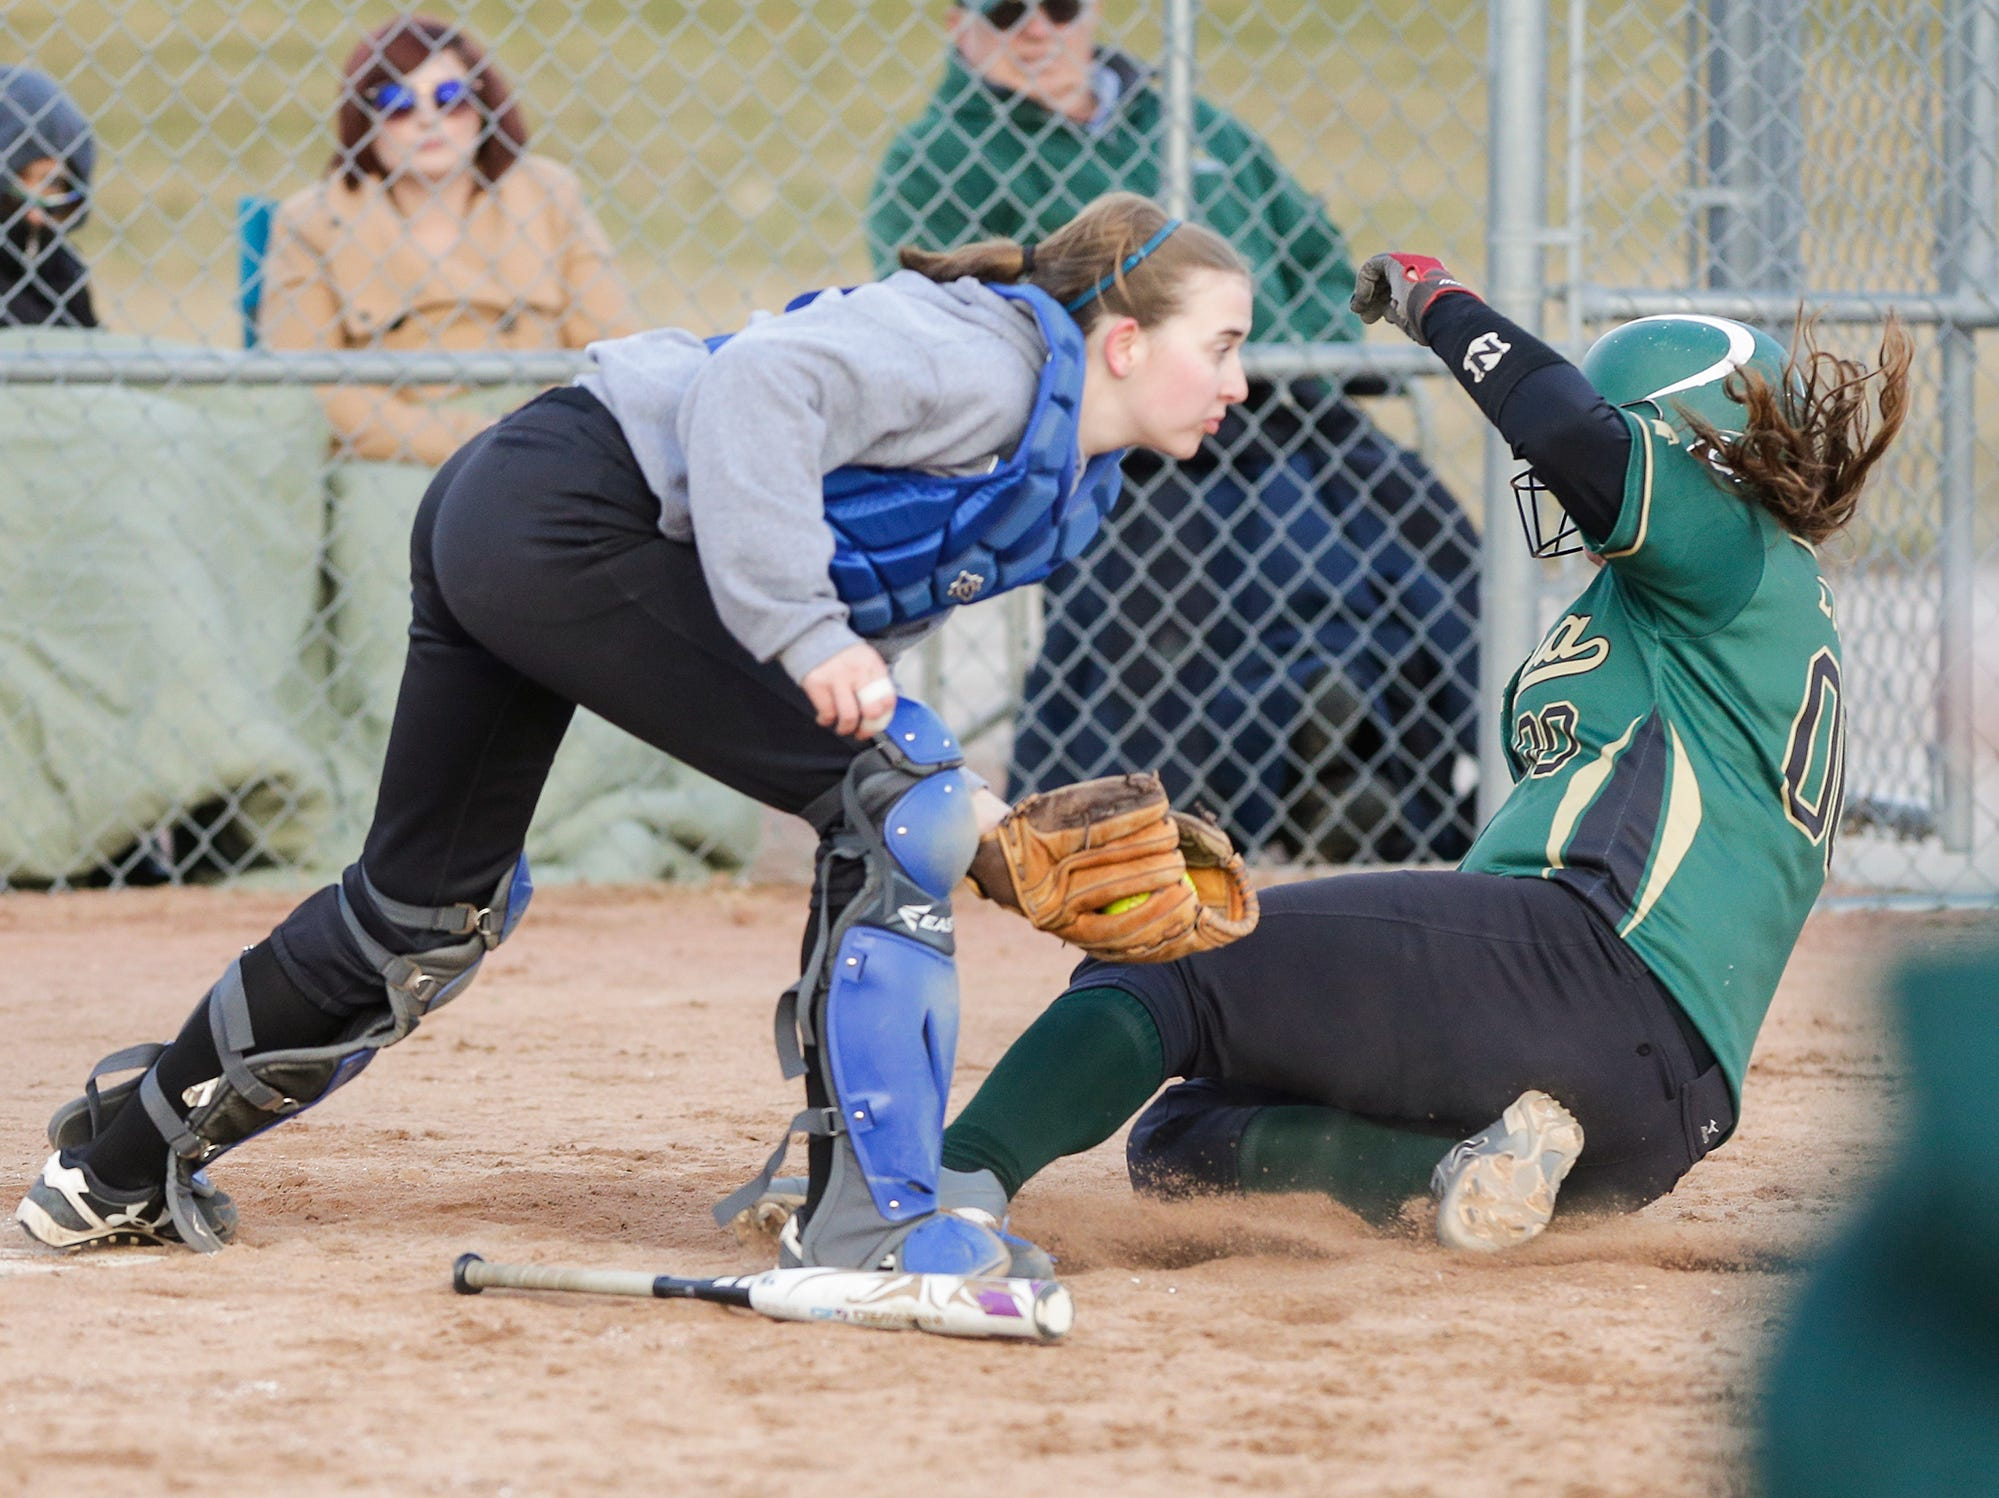 Laconia High School softball's Abby Luczak gets tagged out at home by Winnebago Lutheran Academy's catcher April 9, 2019 during their game in Fond du Lac, Wis. Laconia won the game 25-9. Doug Raflik/USA TODAY NETWORK-Wisconsin